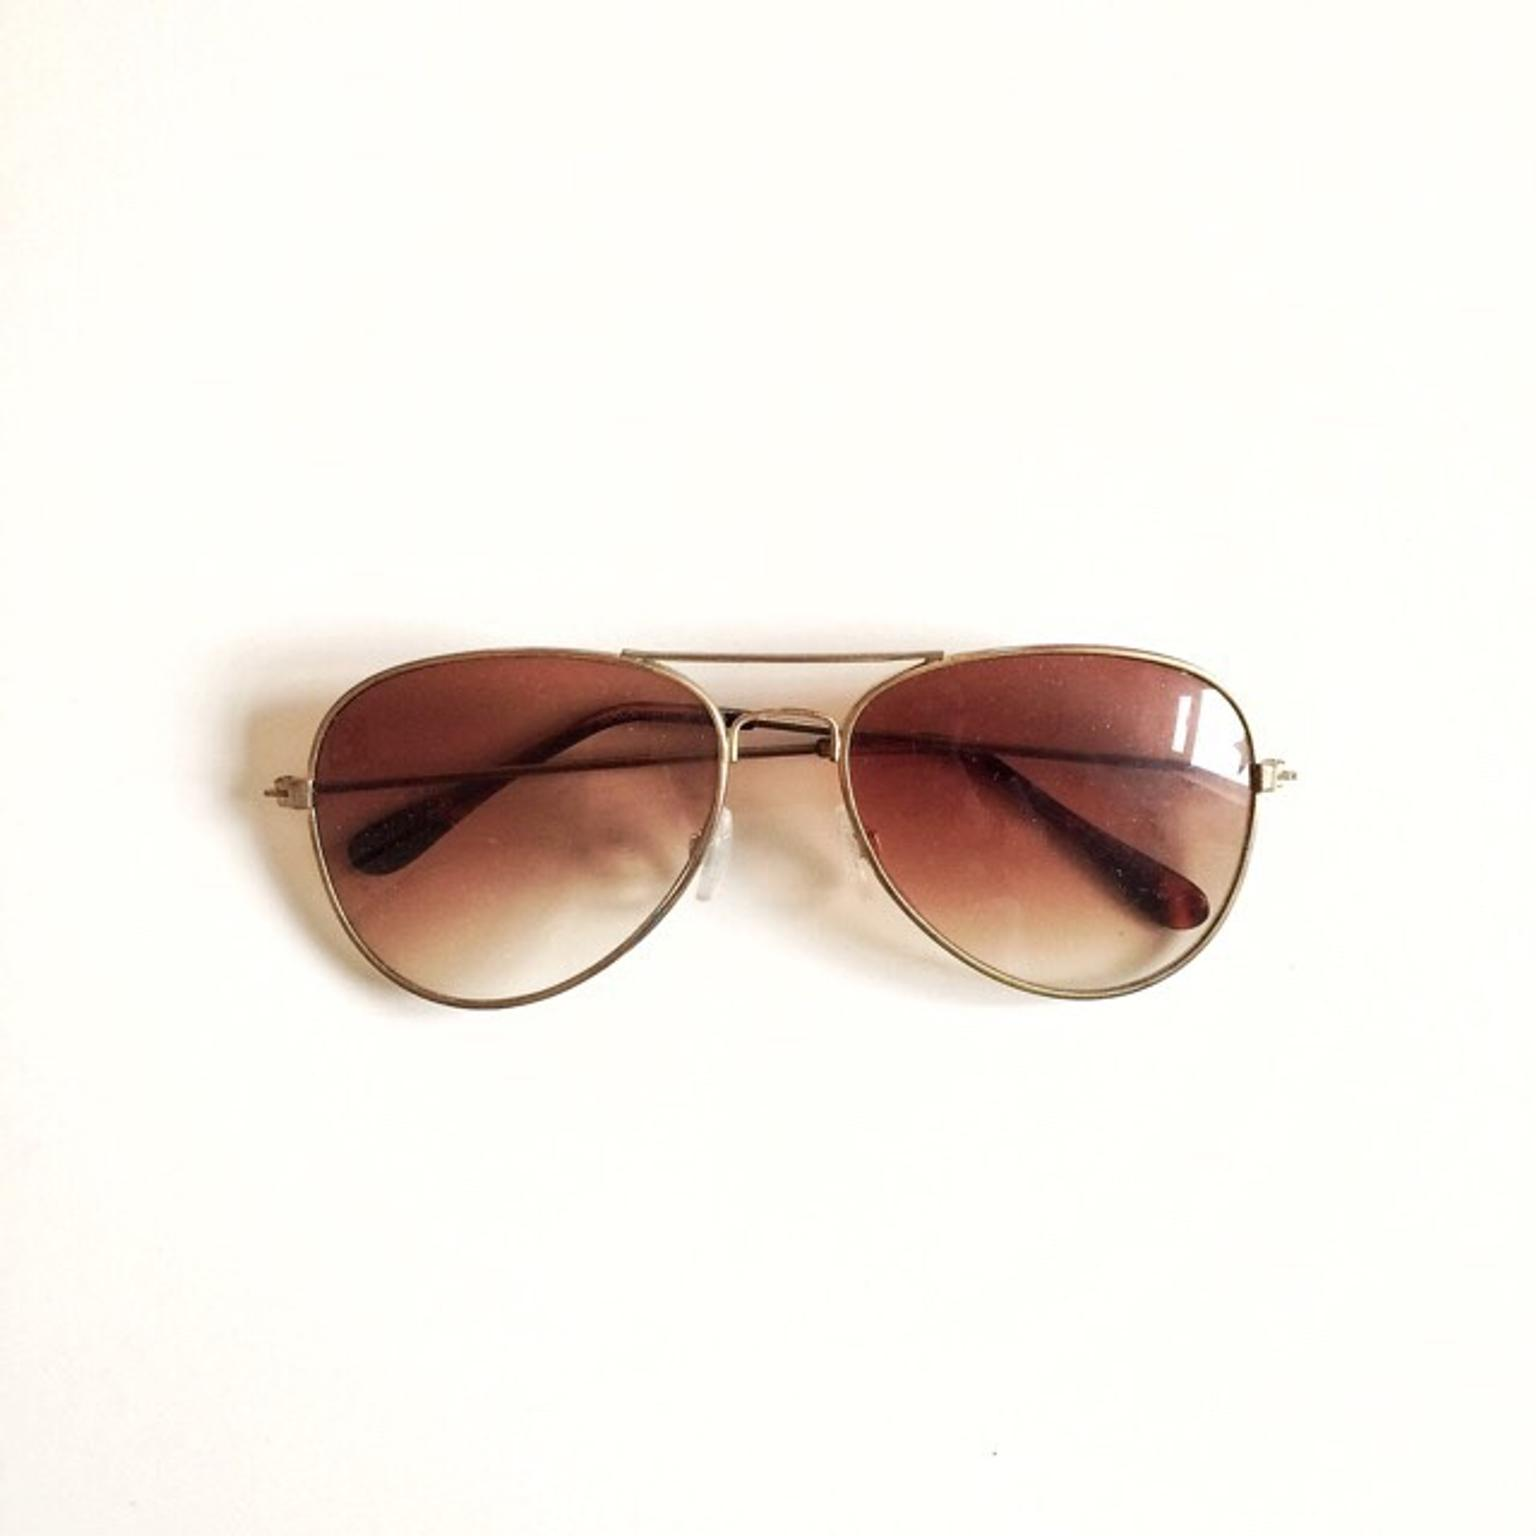 9b948adda912 Very good condition H&M aviator sunglasses in B16 Birmingham for £3.50 for  sale - Shpock